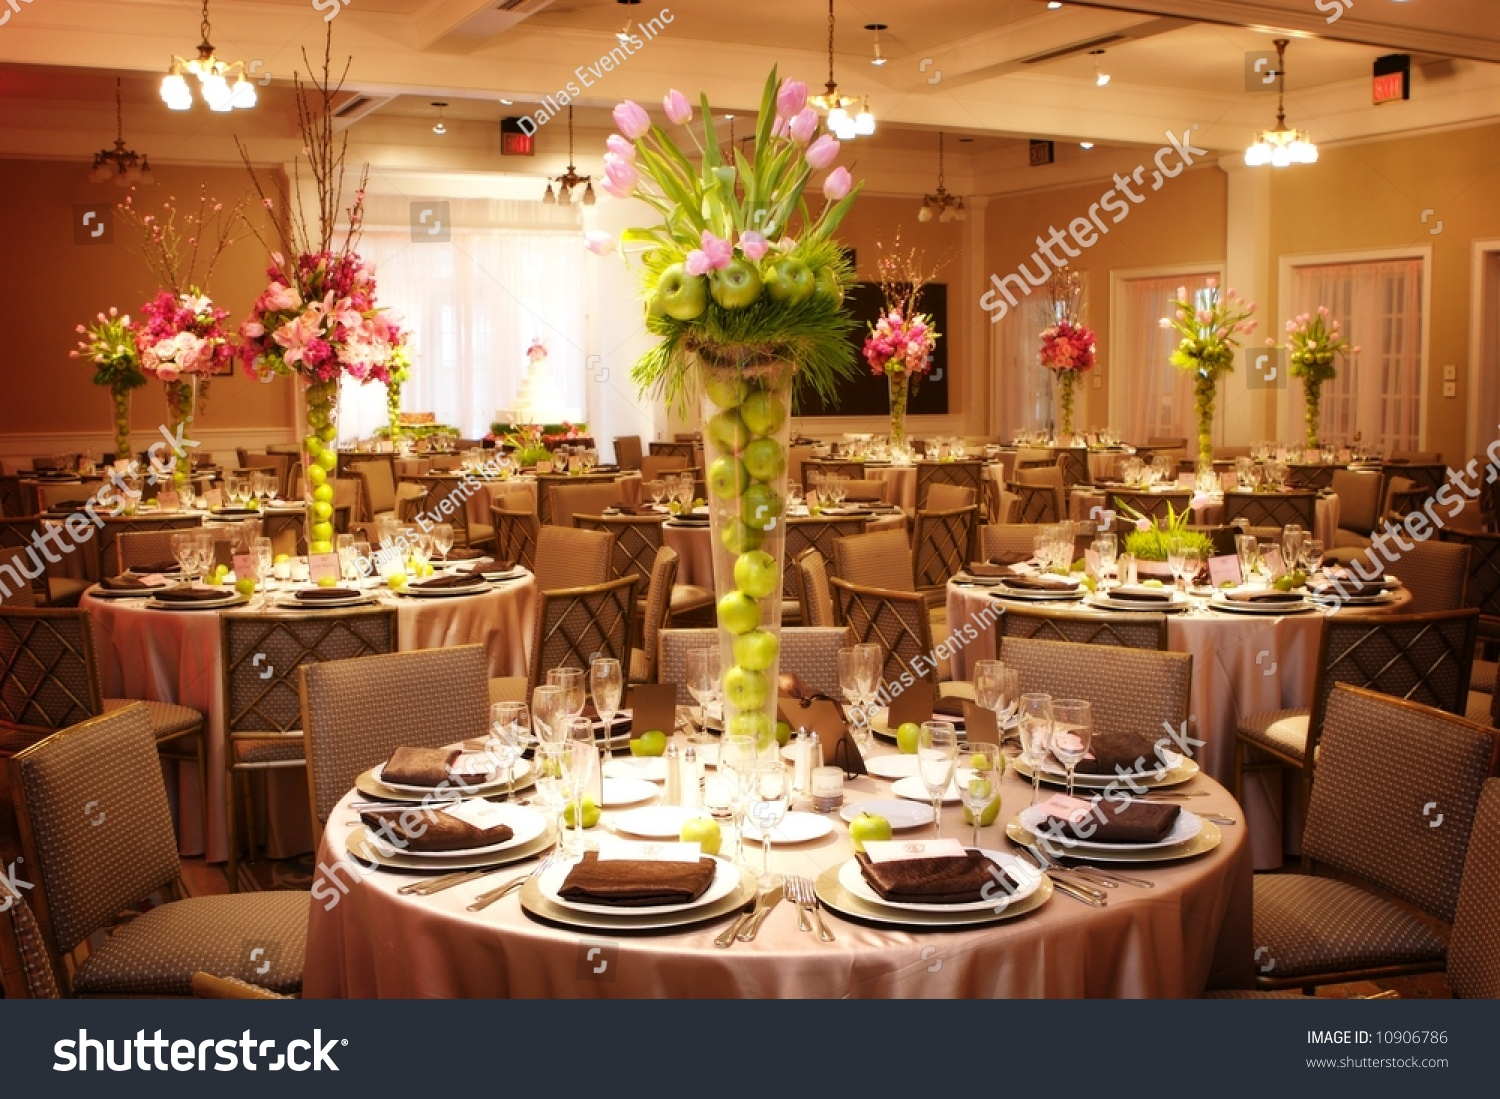 An Image Of Table Setting At A Luxury Wedding Reception Stock Photo 10906786 : Shutterstock